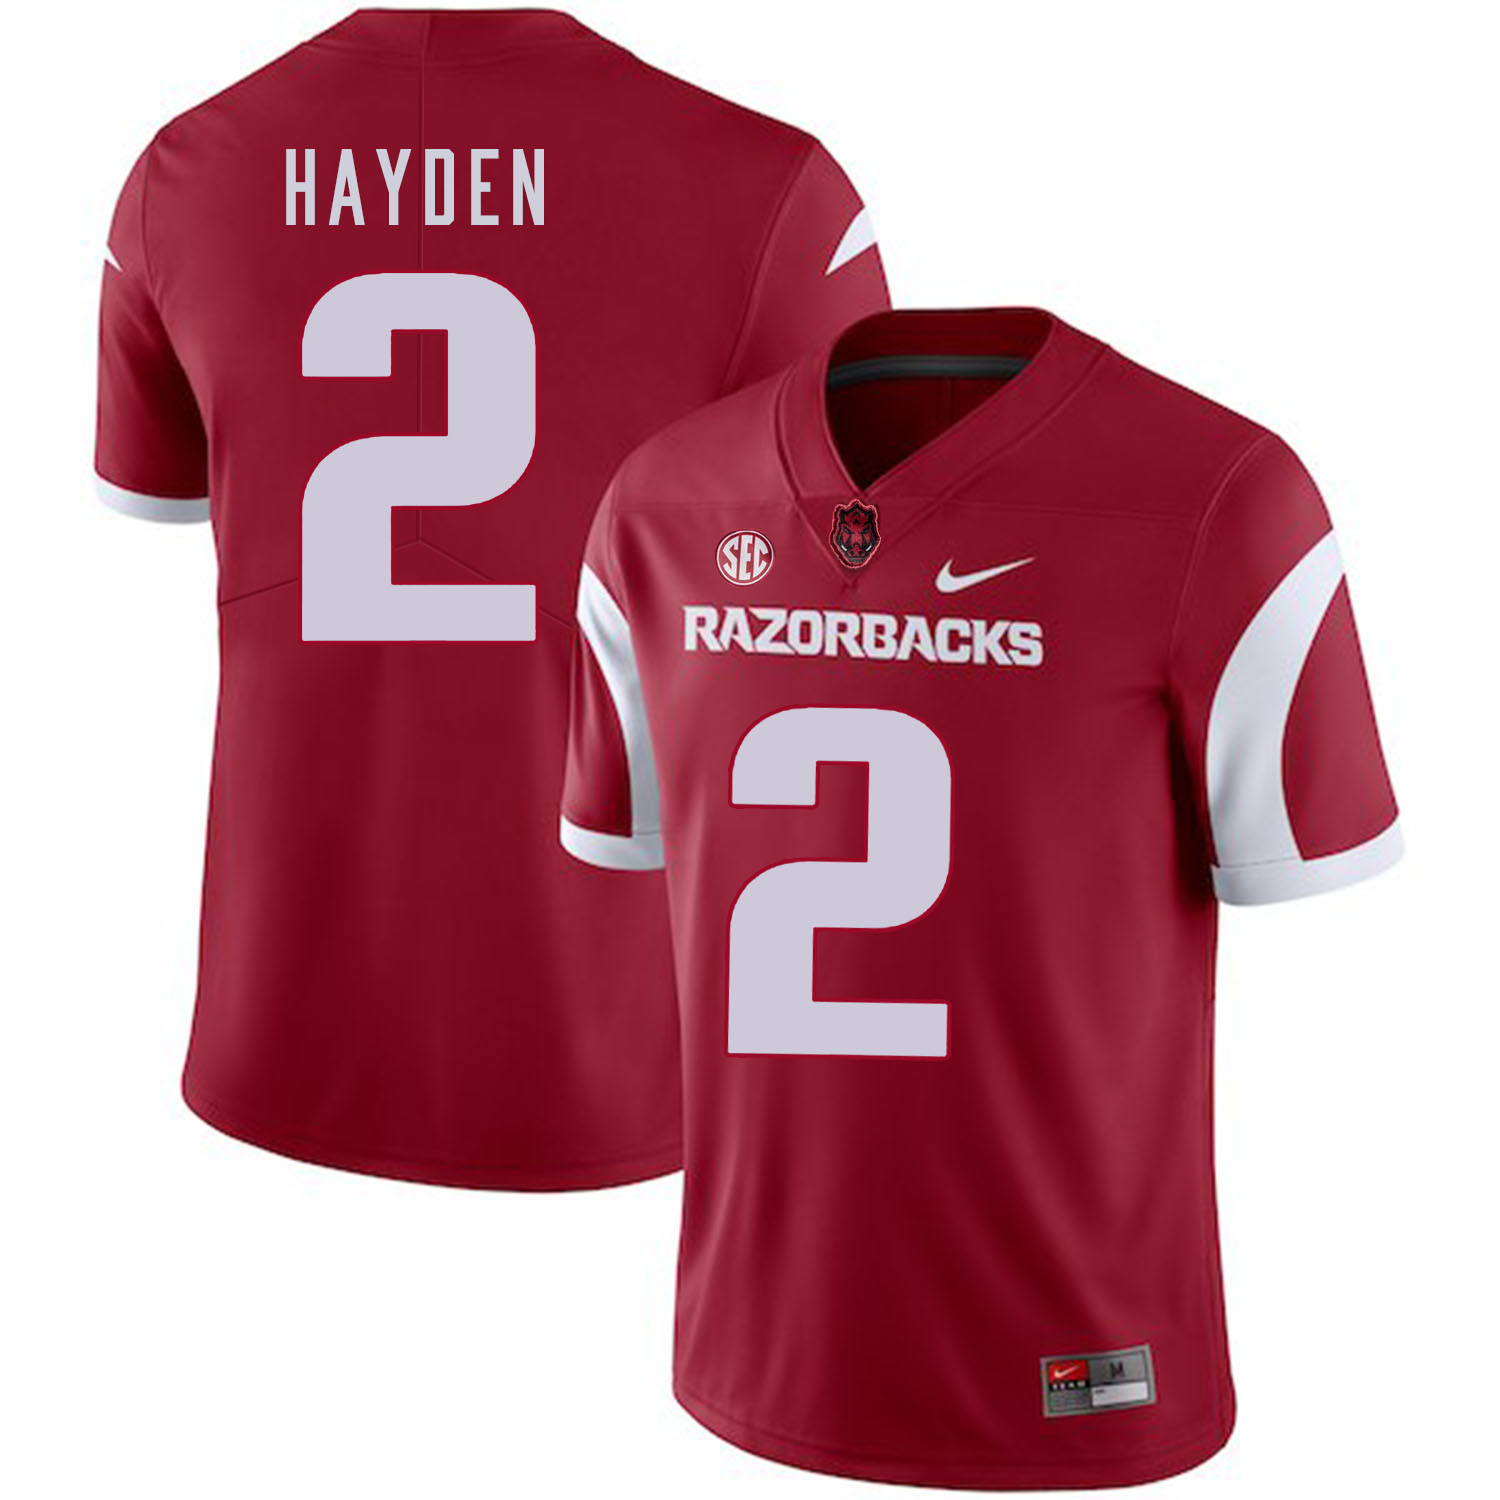 Arkansas Razorbacks 2 Chase Hayden Red College Football Jersey